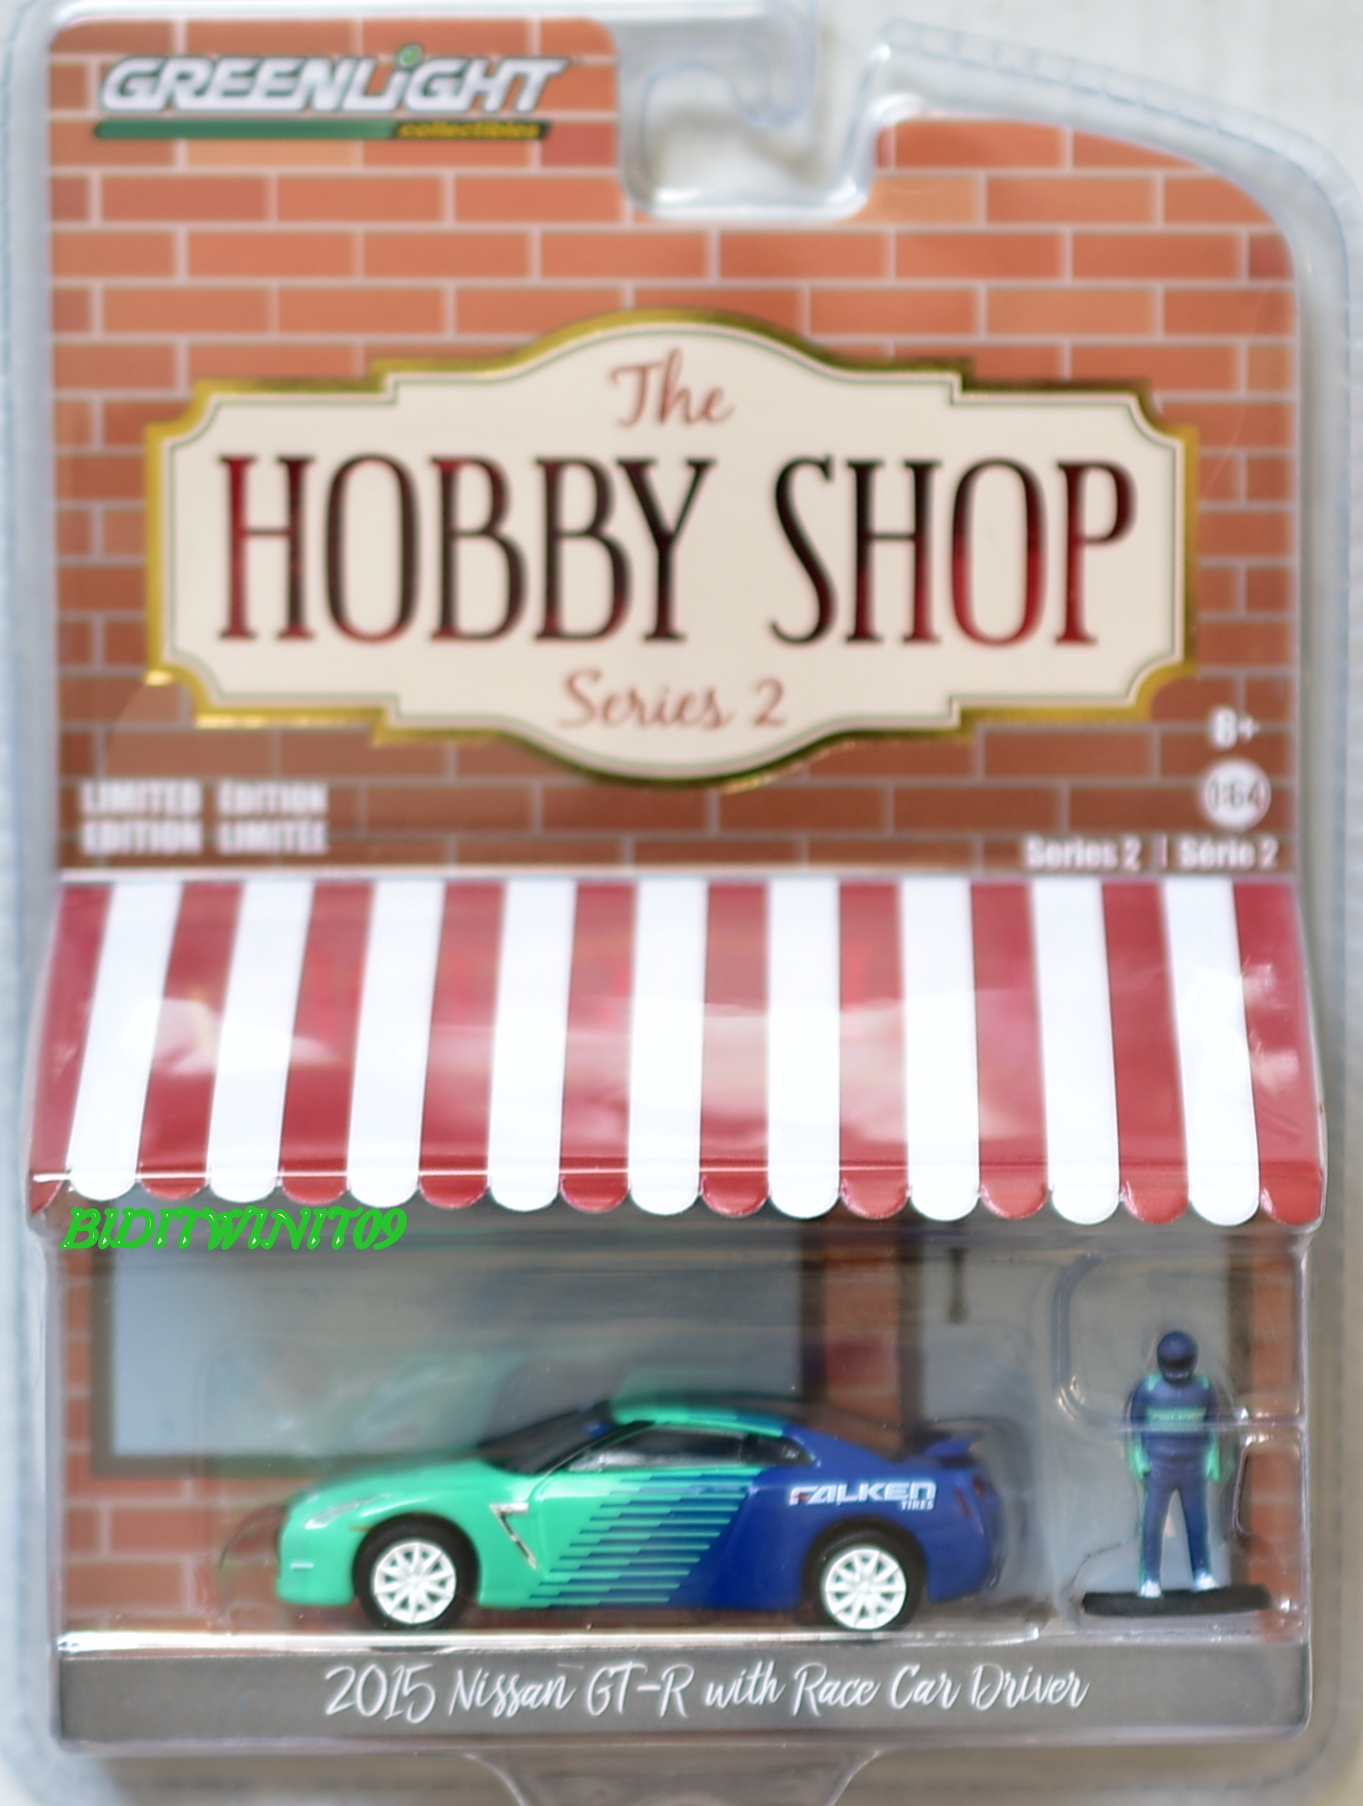 GREENLIGHT HOBBY SHOP SERIES 2 2015 NISSAN GT-R WITH RACE CAR DRIVER FALKEN